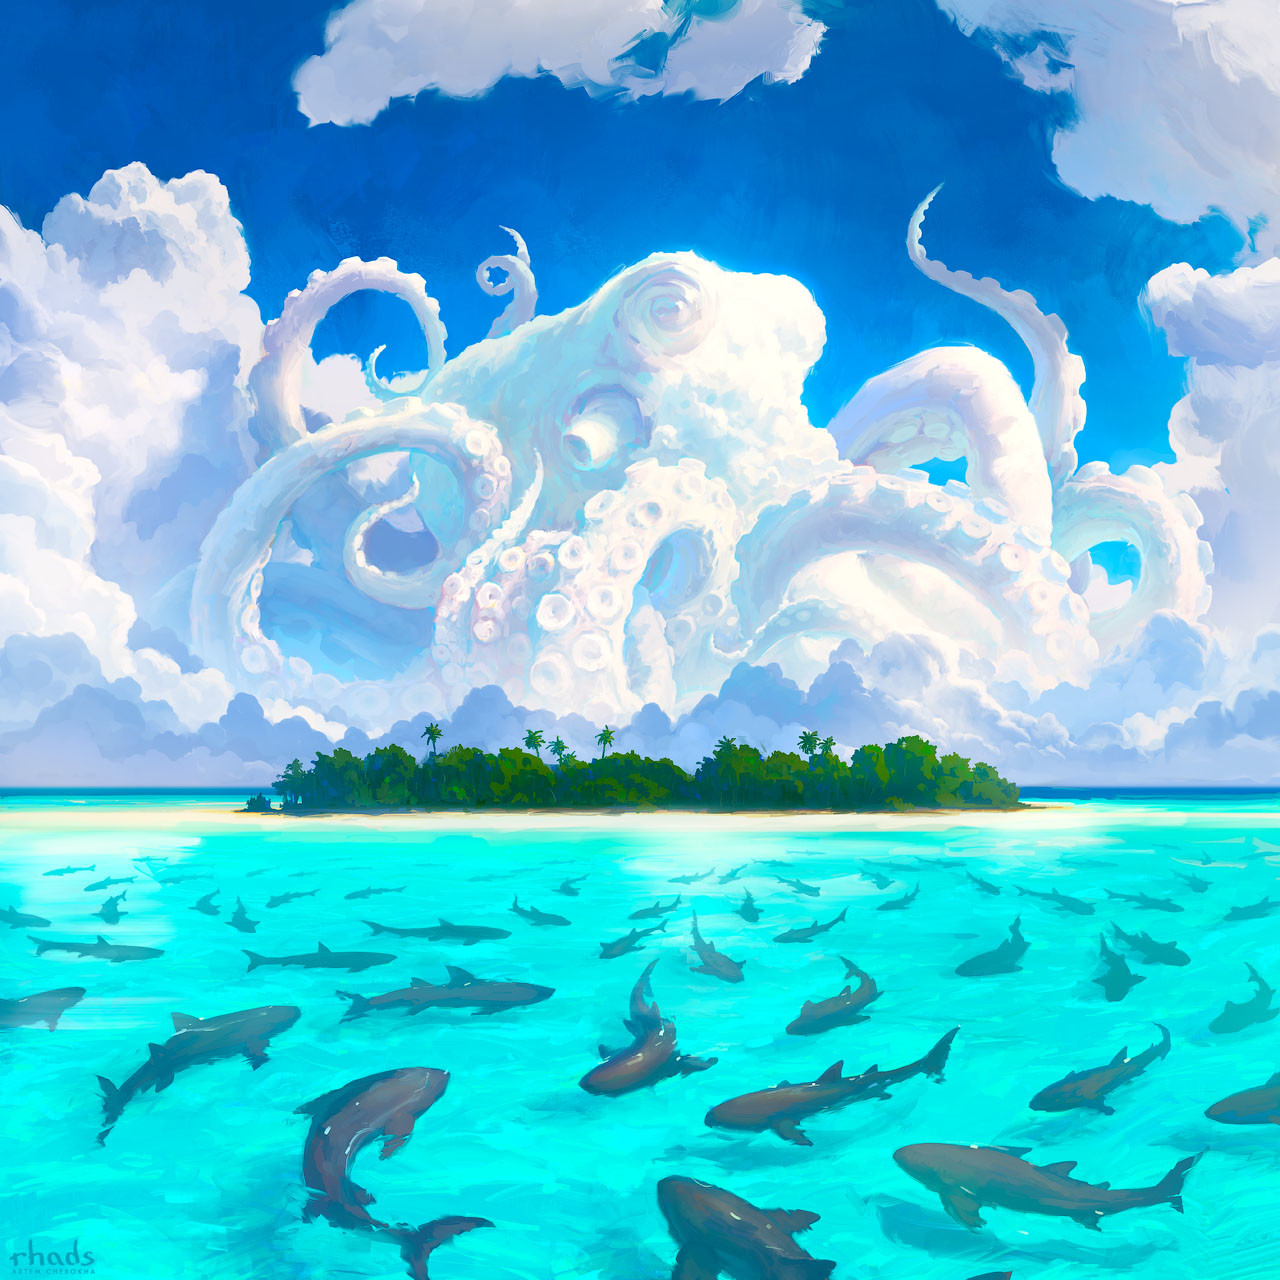 Digital Painting Illustration Artem Chebokha Rhads Cloud Octopus Island Shark